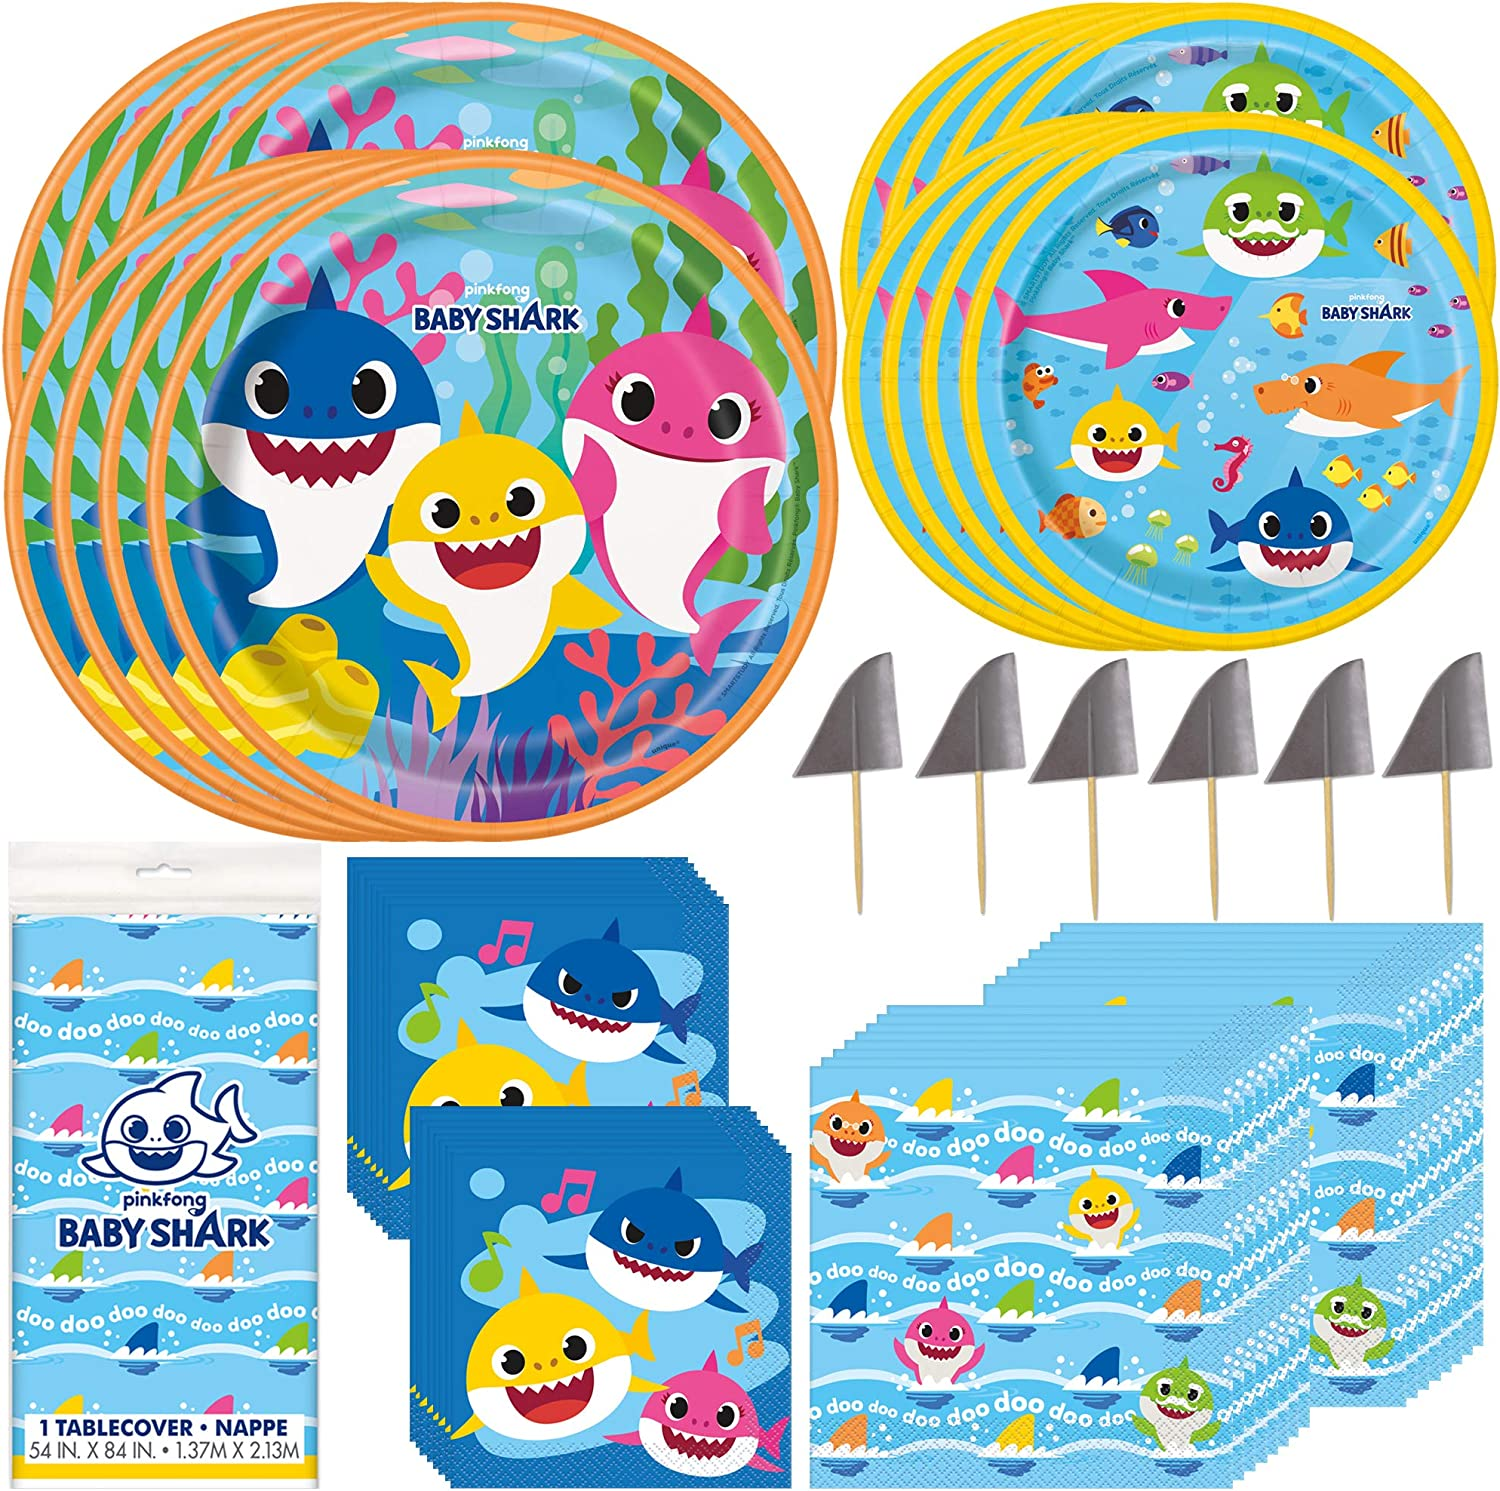 Unique Baby Shark Dinnerware Party Bundle | Luncheon Napkins, Dinner & Dessert Plates, Table Cover | Great for Themed Parties, Kid's Birthday, Halloween - Officially Licensed by Unique